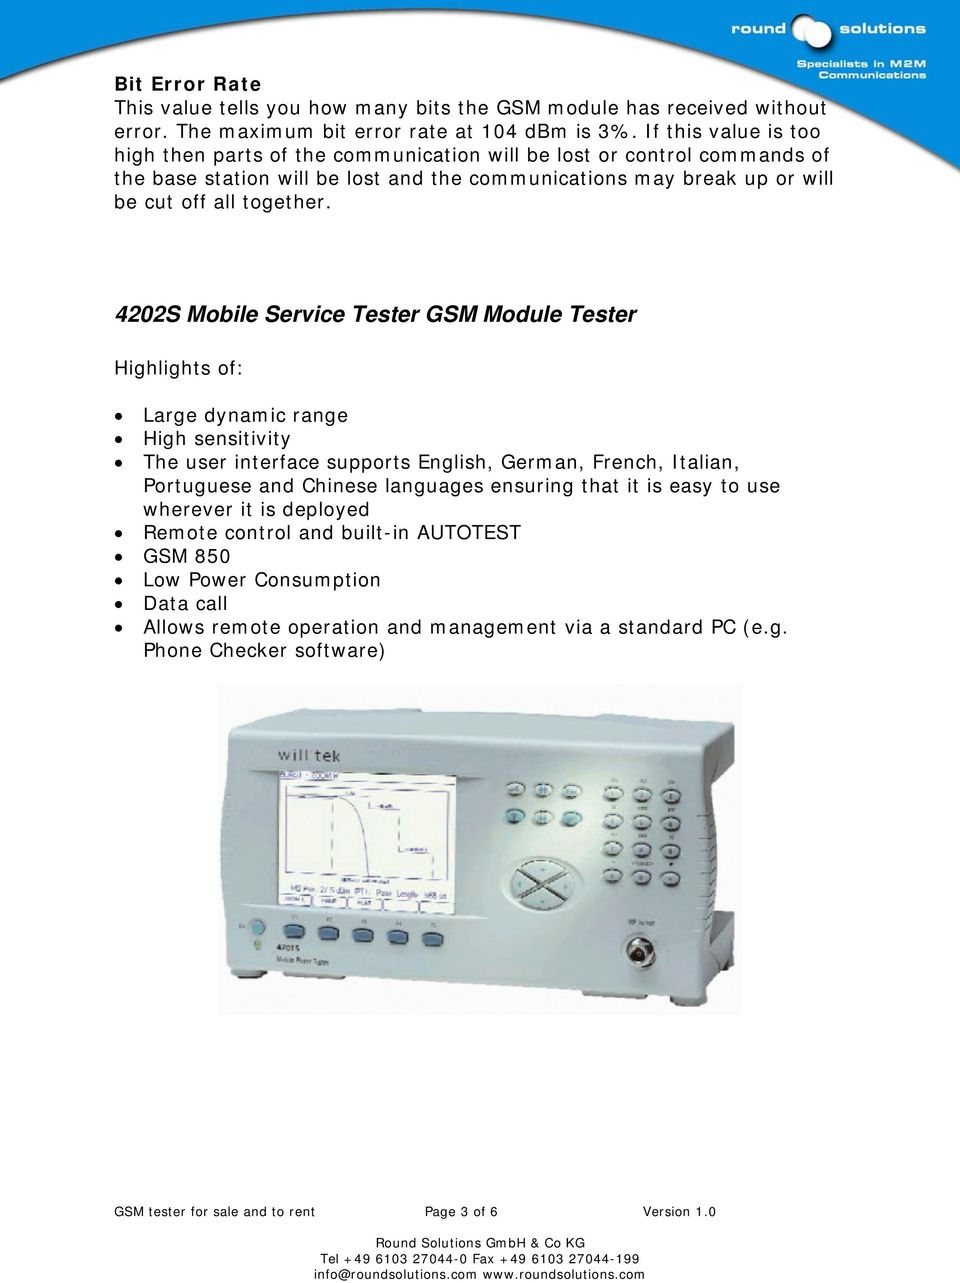 4202S Mobile Service Tester GSM Module Tester Highlights of: Large dynamic range High sensitivity The user interface supports English, German, French, Italian, Portuguese and Chinese languages